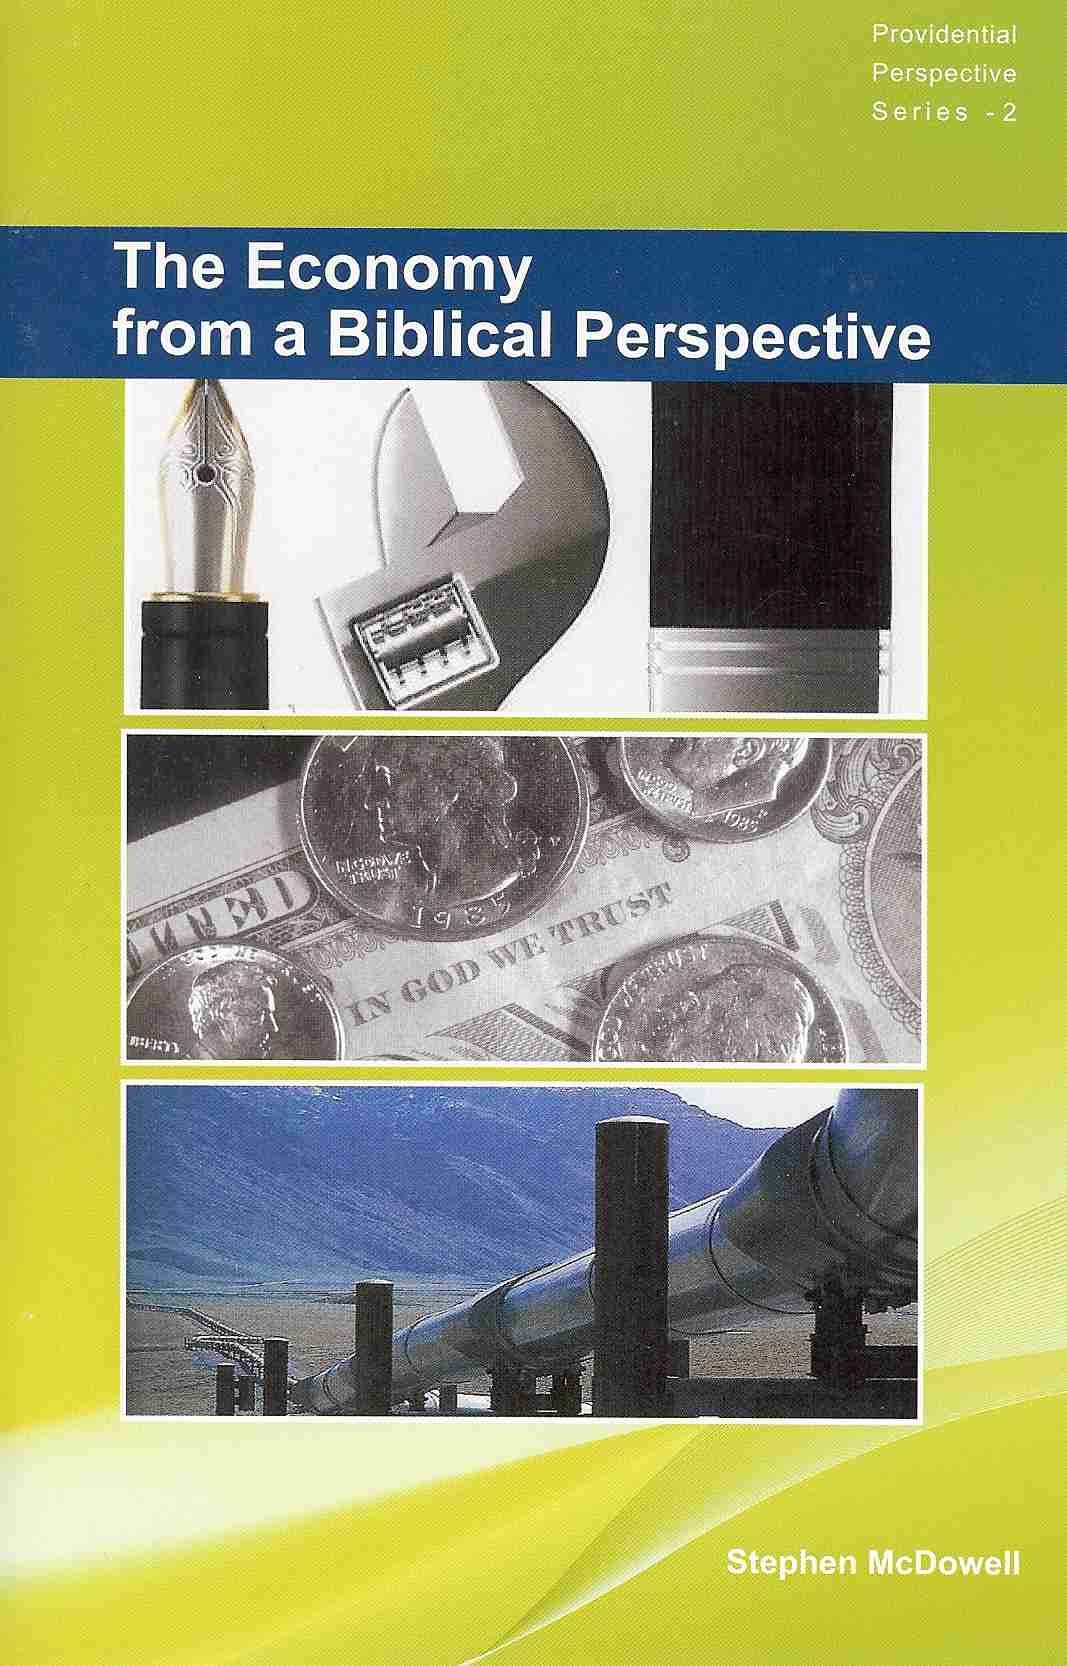 The Economy from a Biblical Perspective (Providential Perspective Book 2)